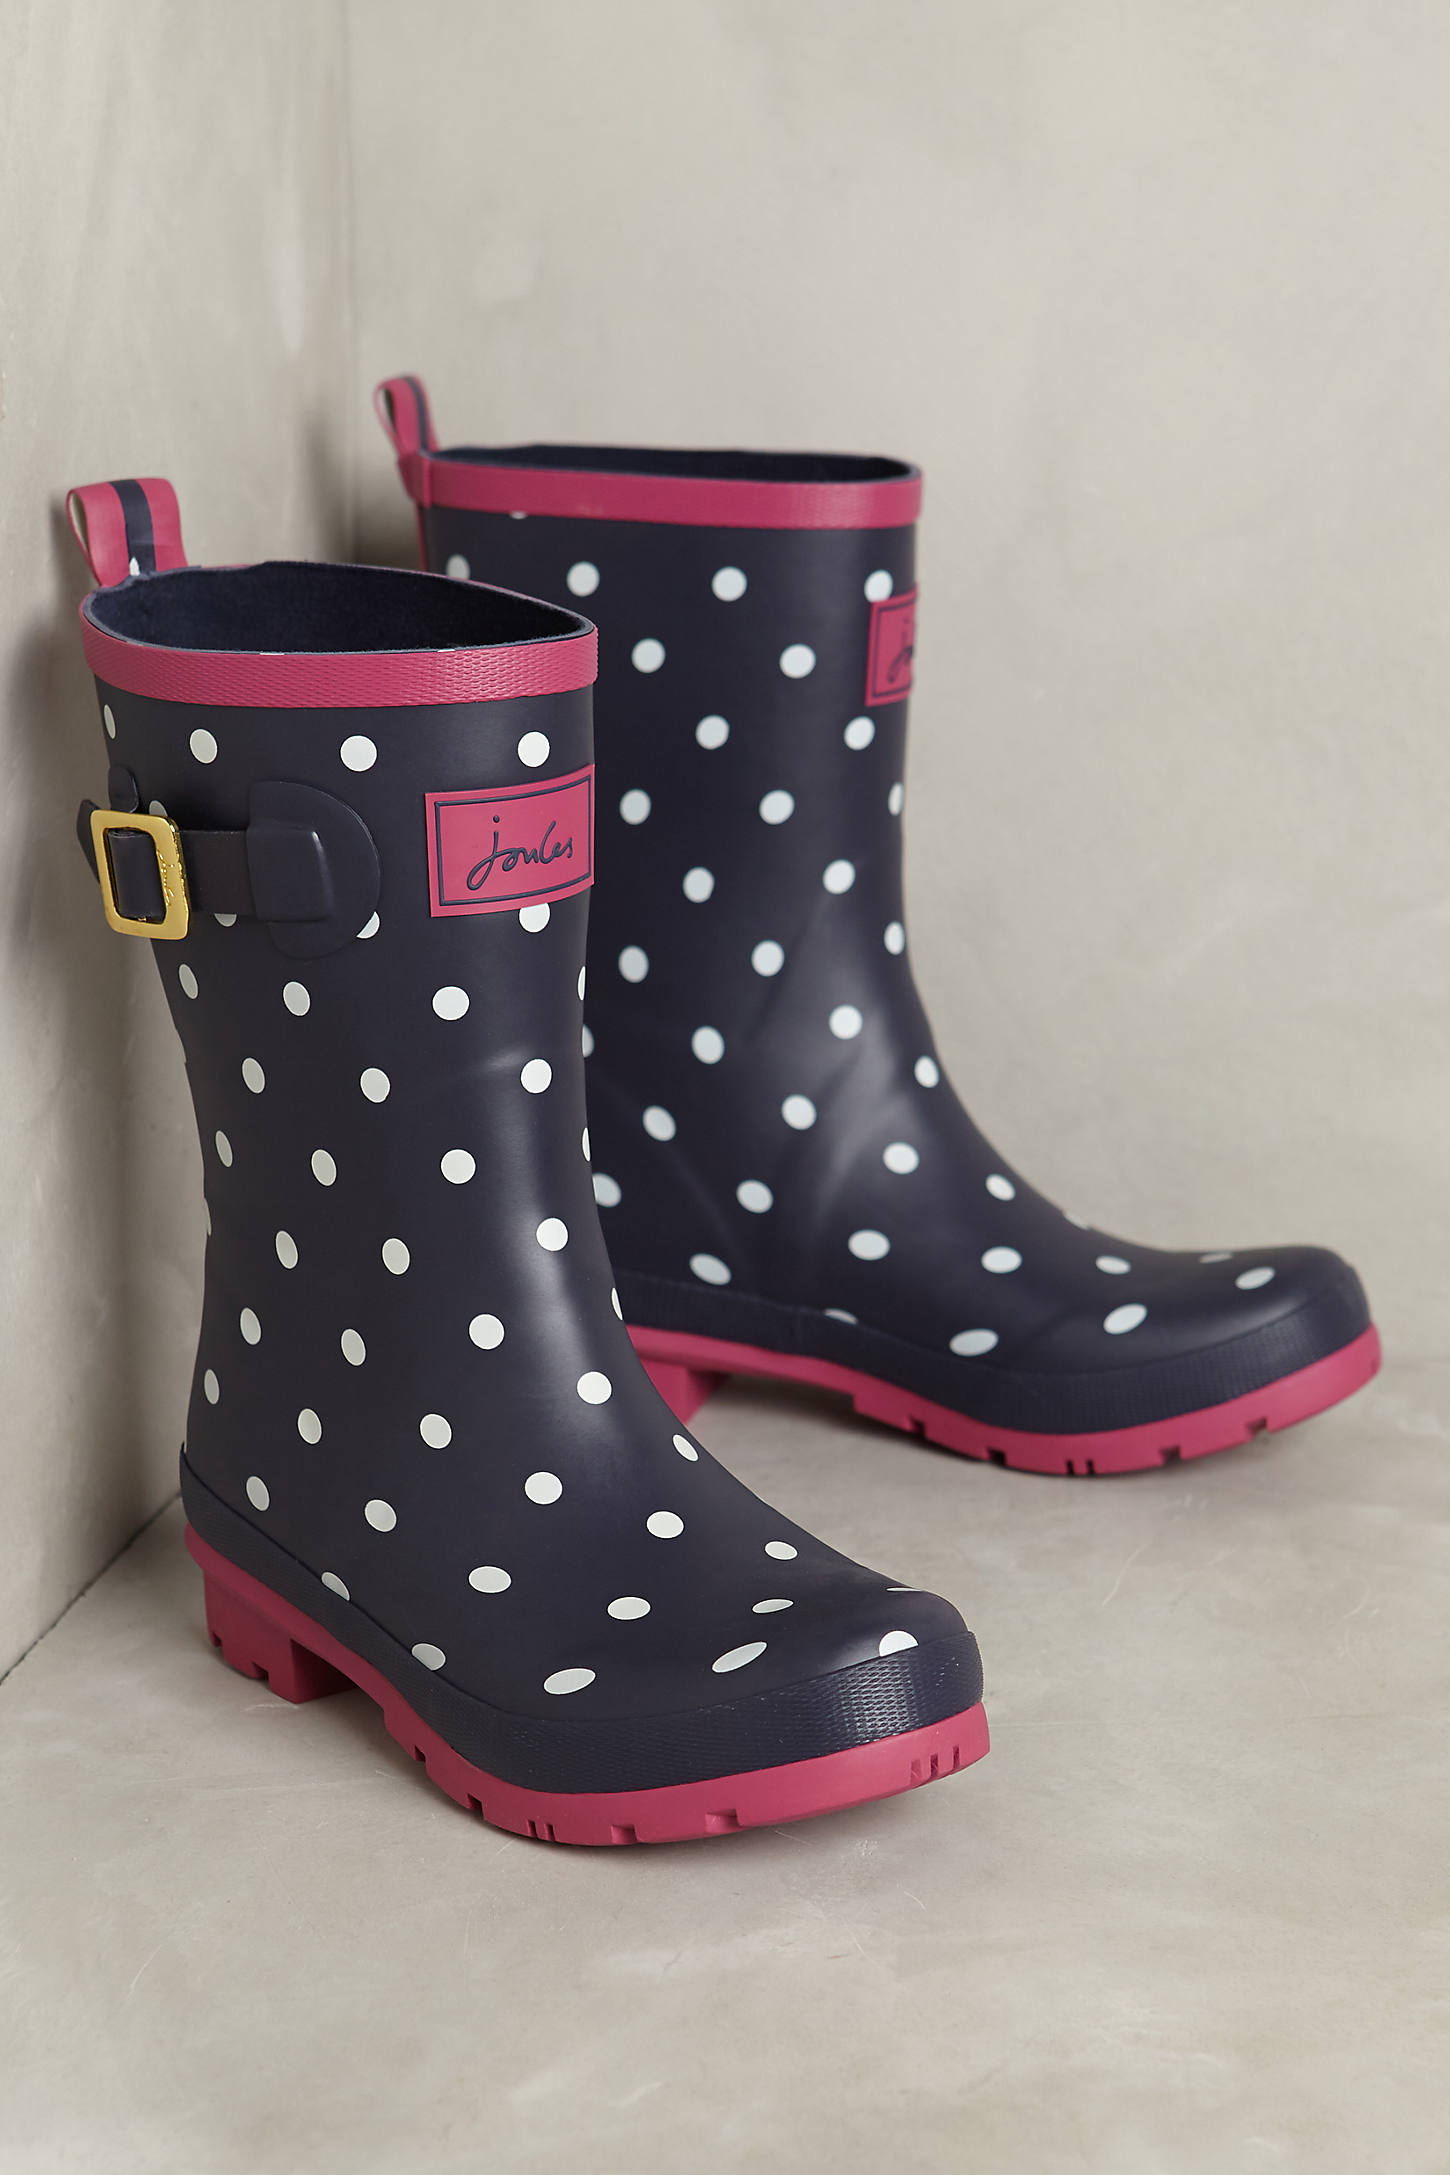 Joules Molly Printed Rain Boots